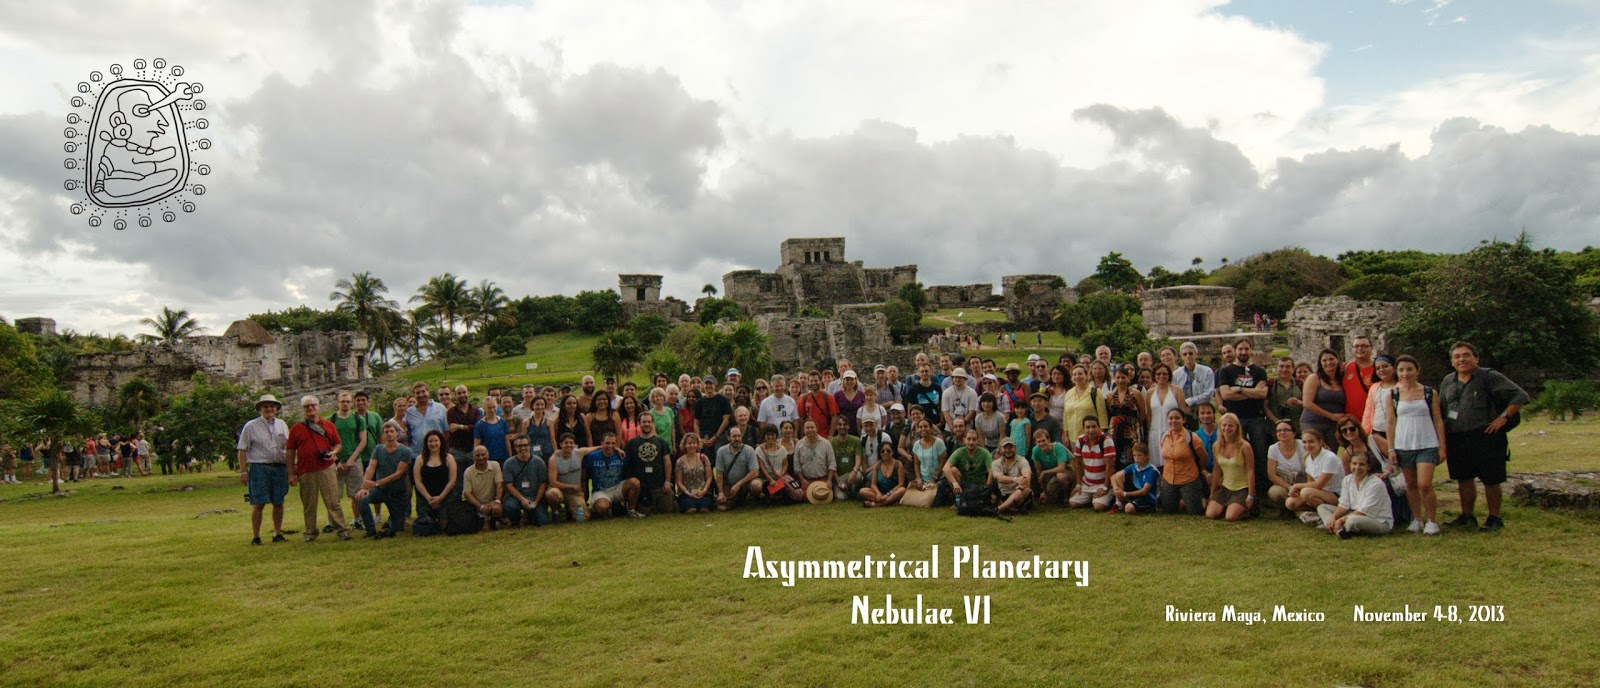 Participants in the Asymmetrical Planetary Nebulae VI meeting, Mexico 2013